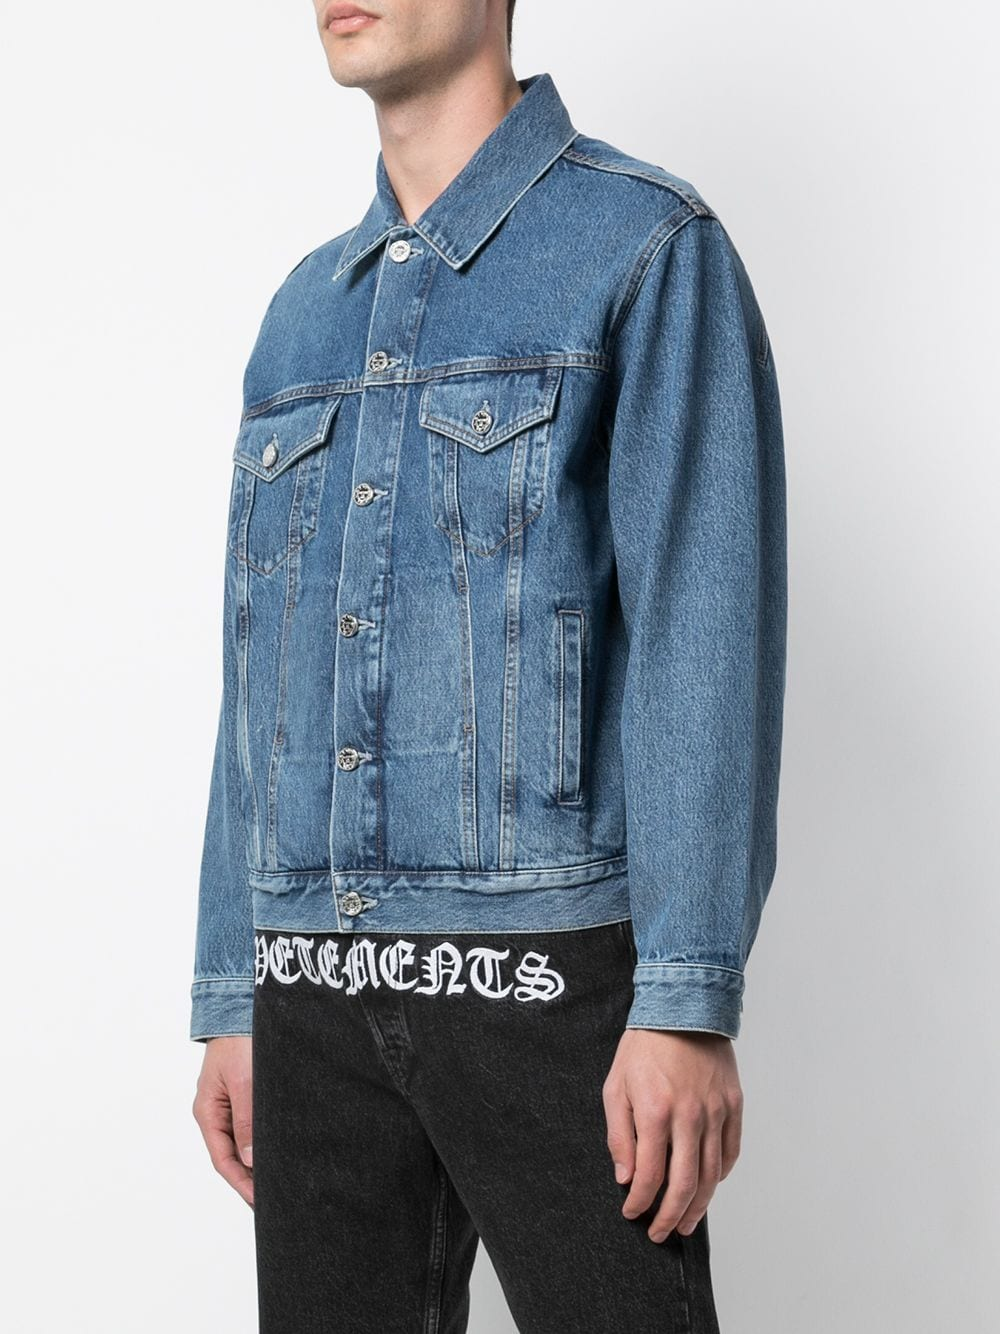 VETEMENTS UNISEX GOTHIC VETEMENTS JACKET